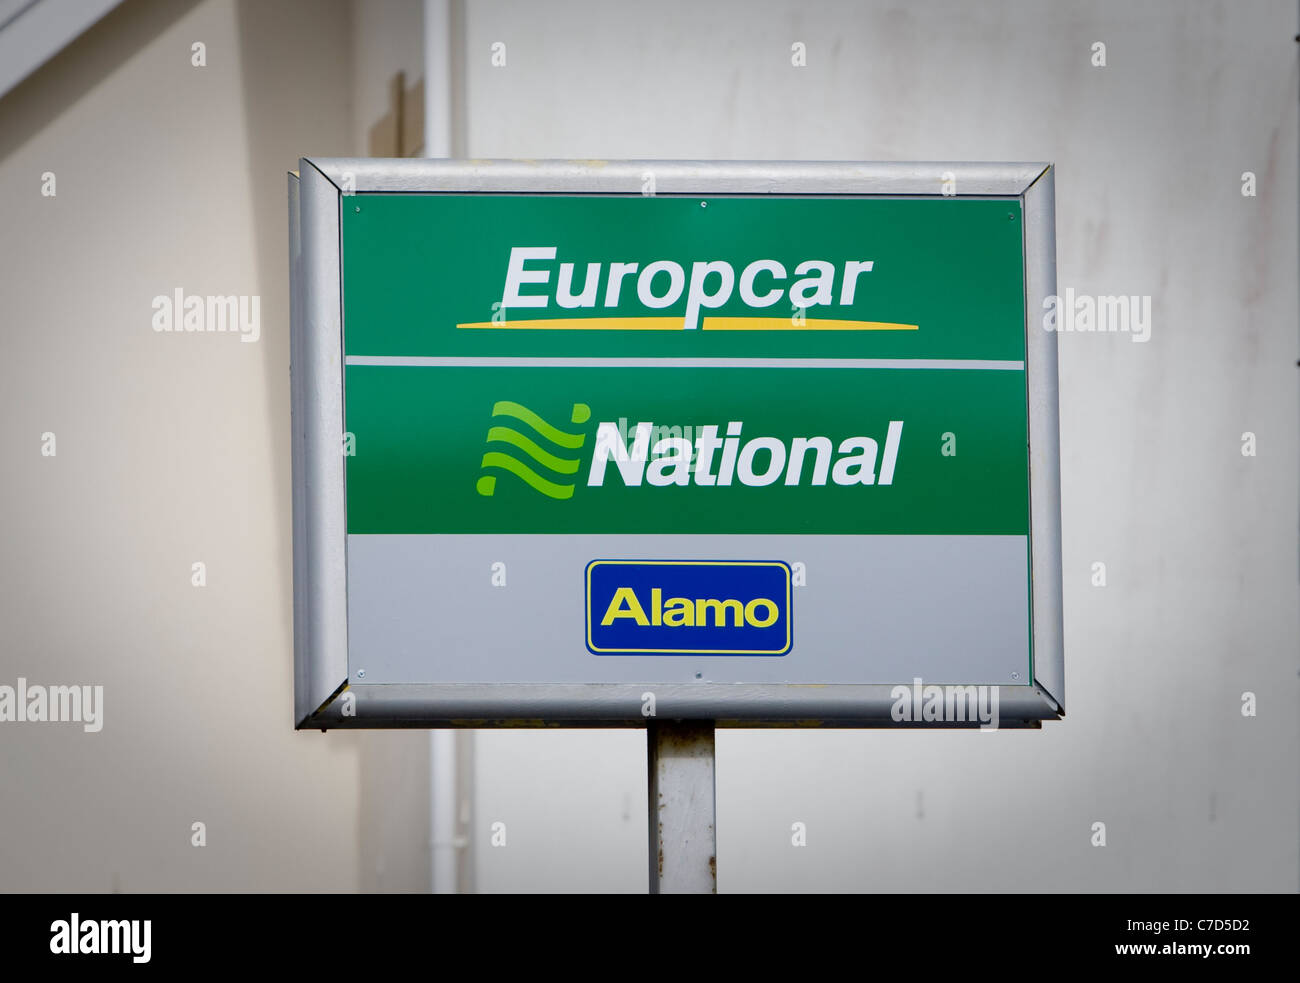 Alamo Car Rental Stock Photos Alamo Car Rental Stock Images Alamy